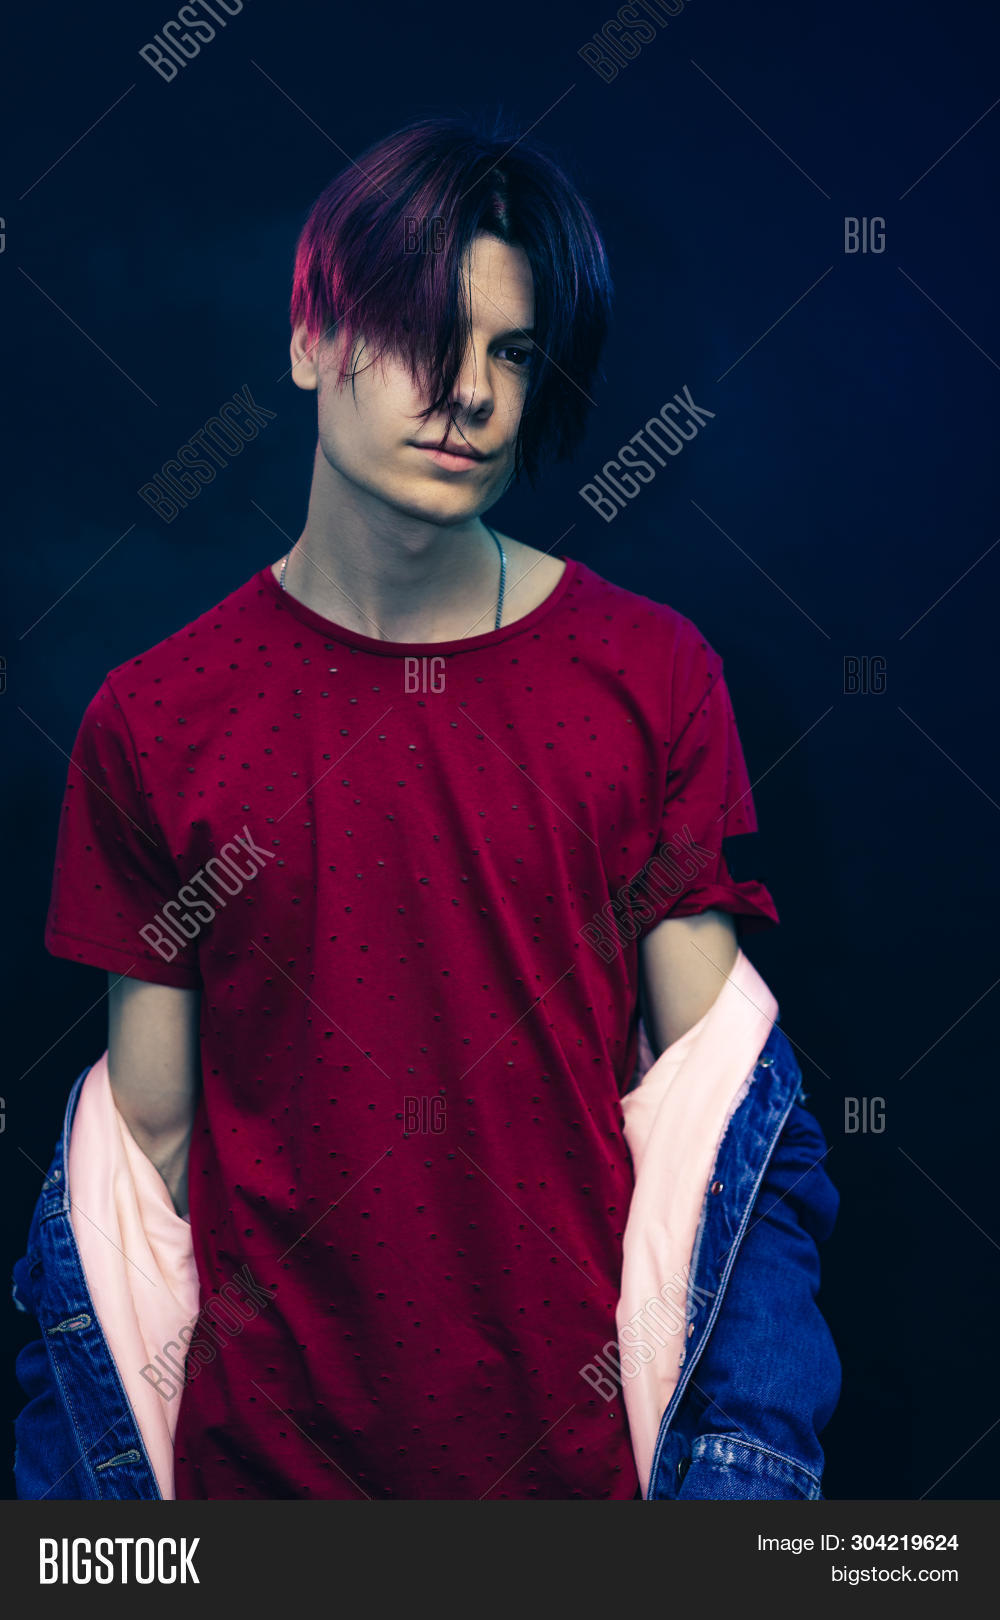 Red And Black Hair Boy : black, Young, Black, Image, Photo, (Free, Trial), Bigstock